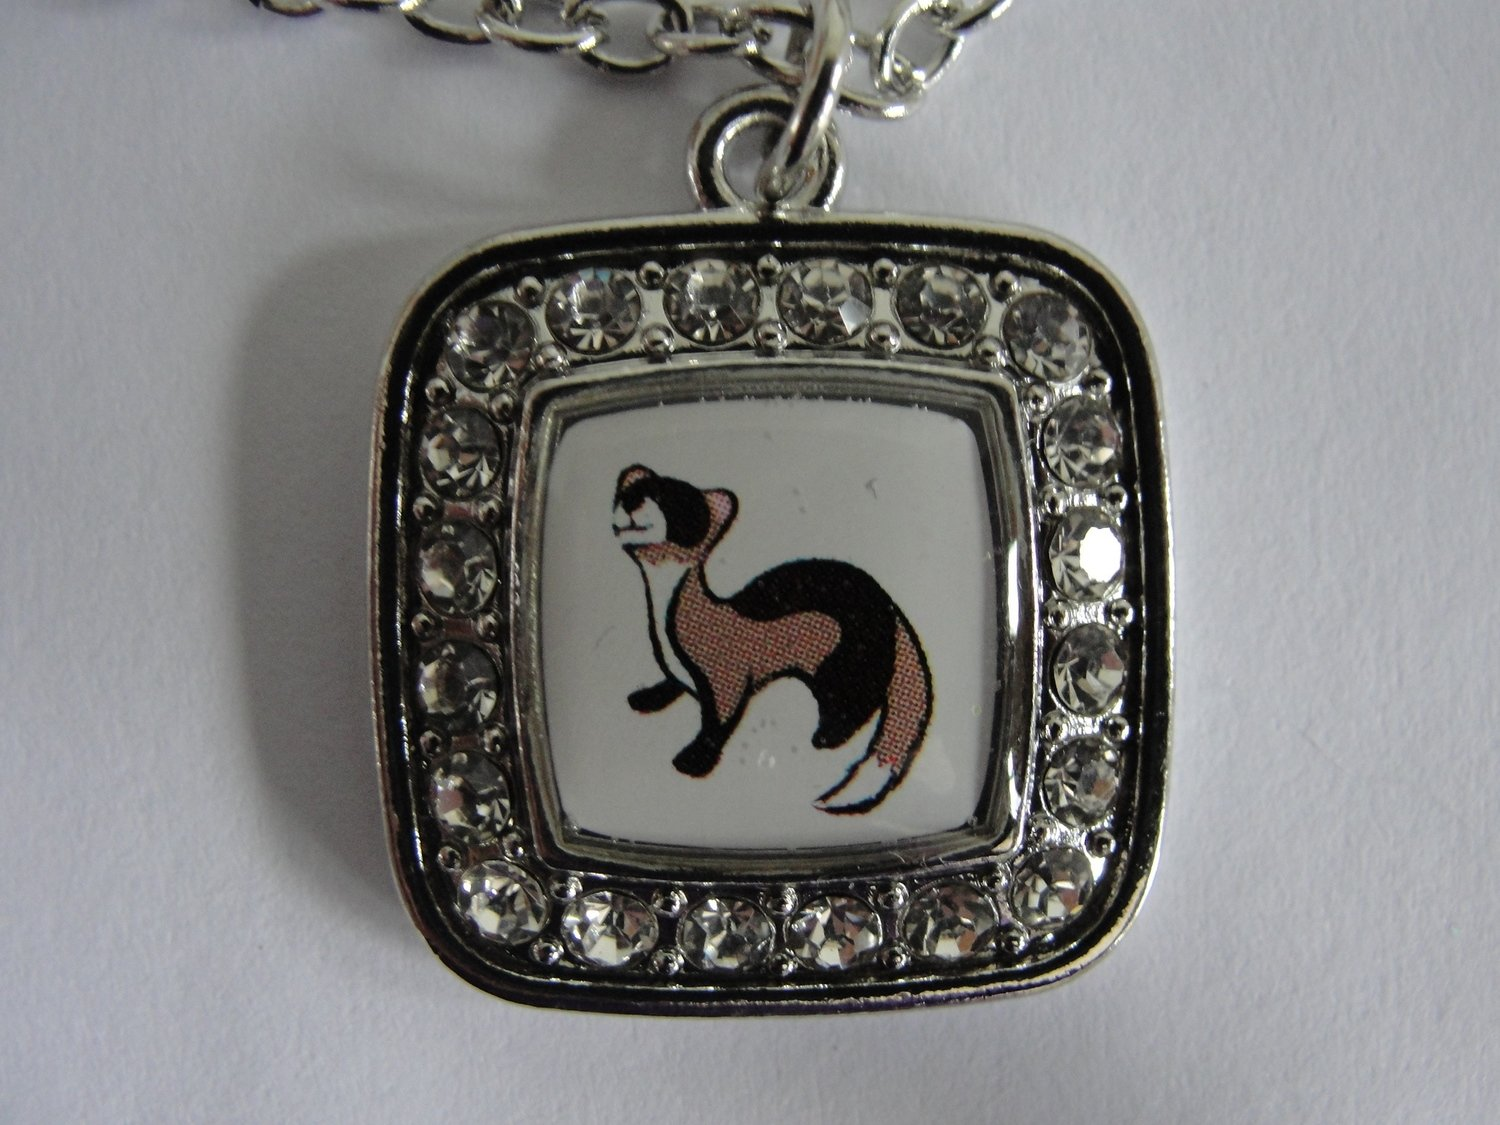 Rhinestone Framed Ferret Necklace